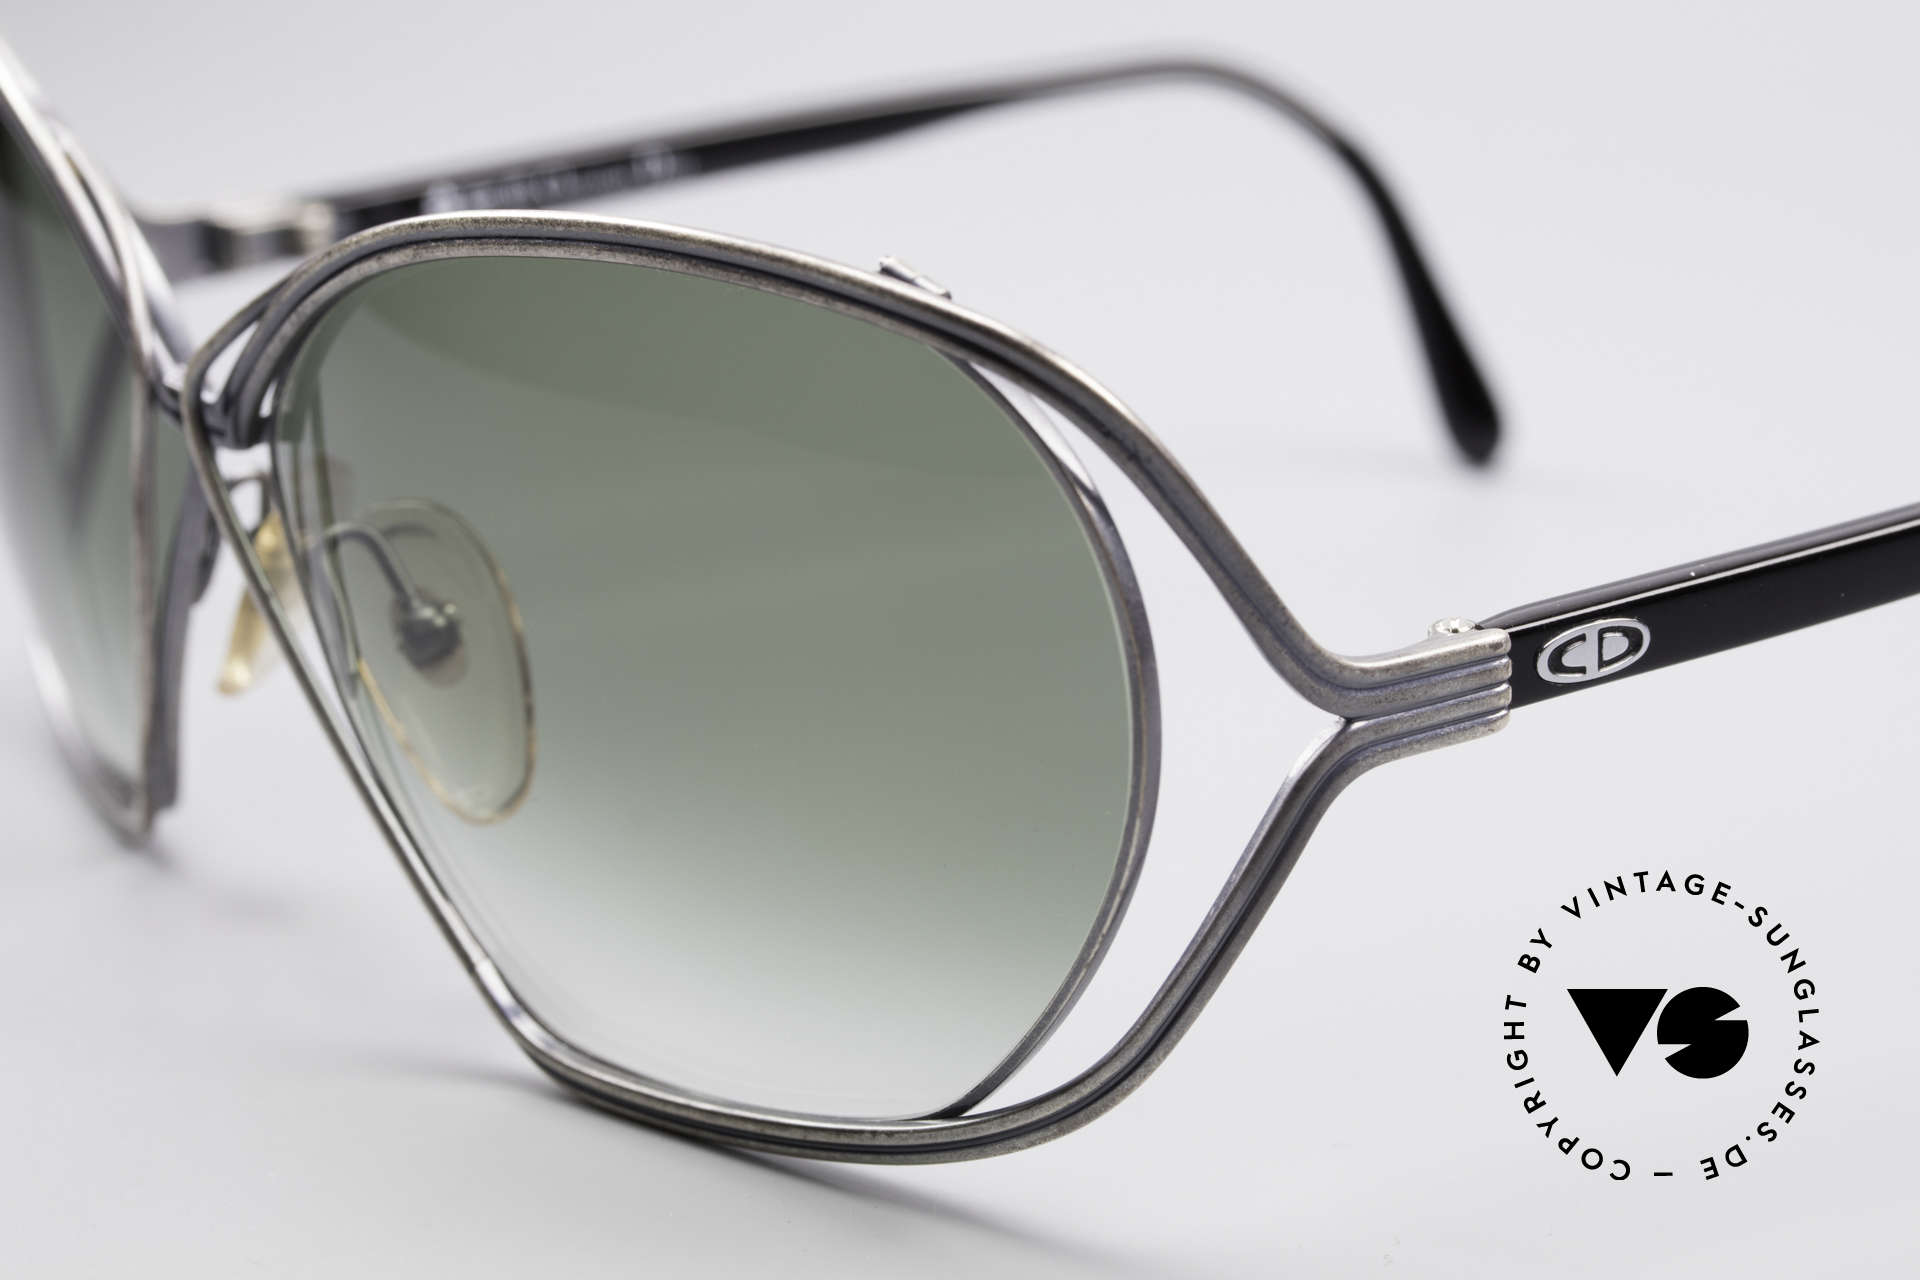 Christian Dior 2499 Ladies XL 80's Sunglasses, 'antique silver' finish and green-gradient sun lenses, Made for Women